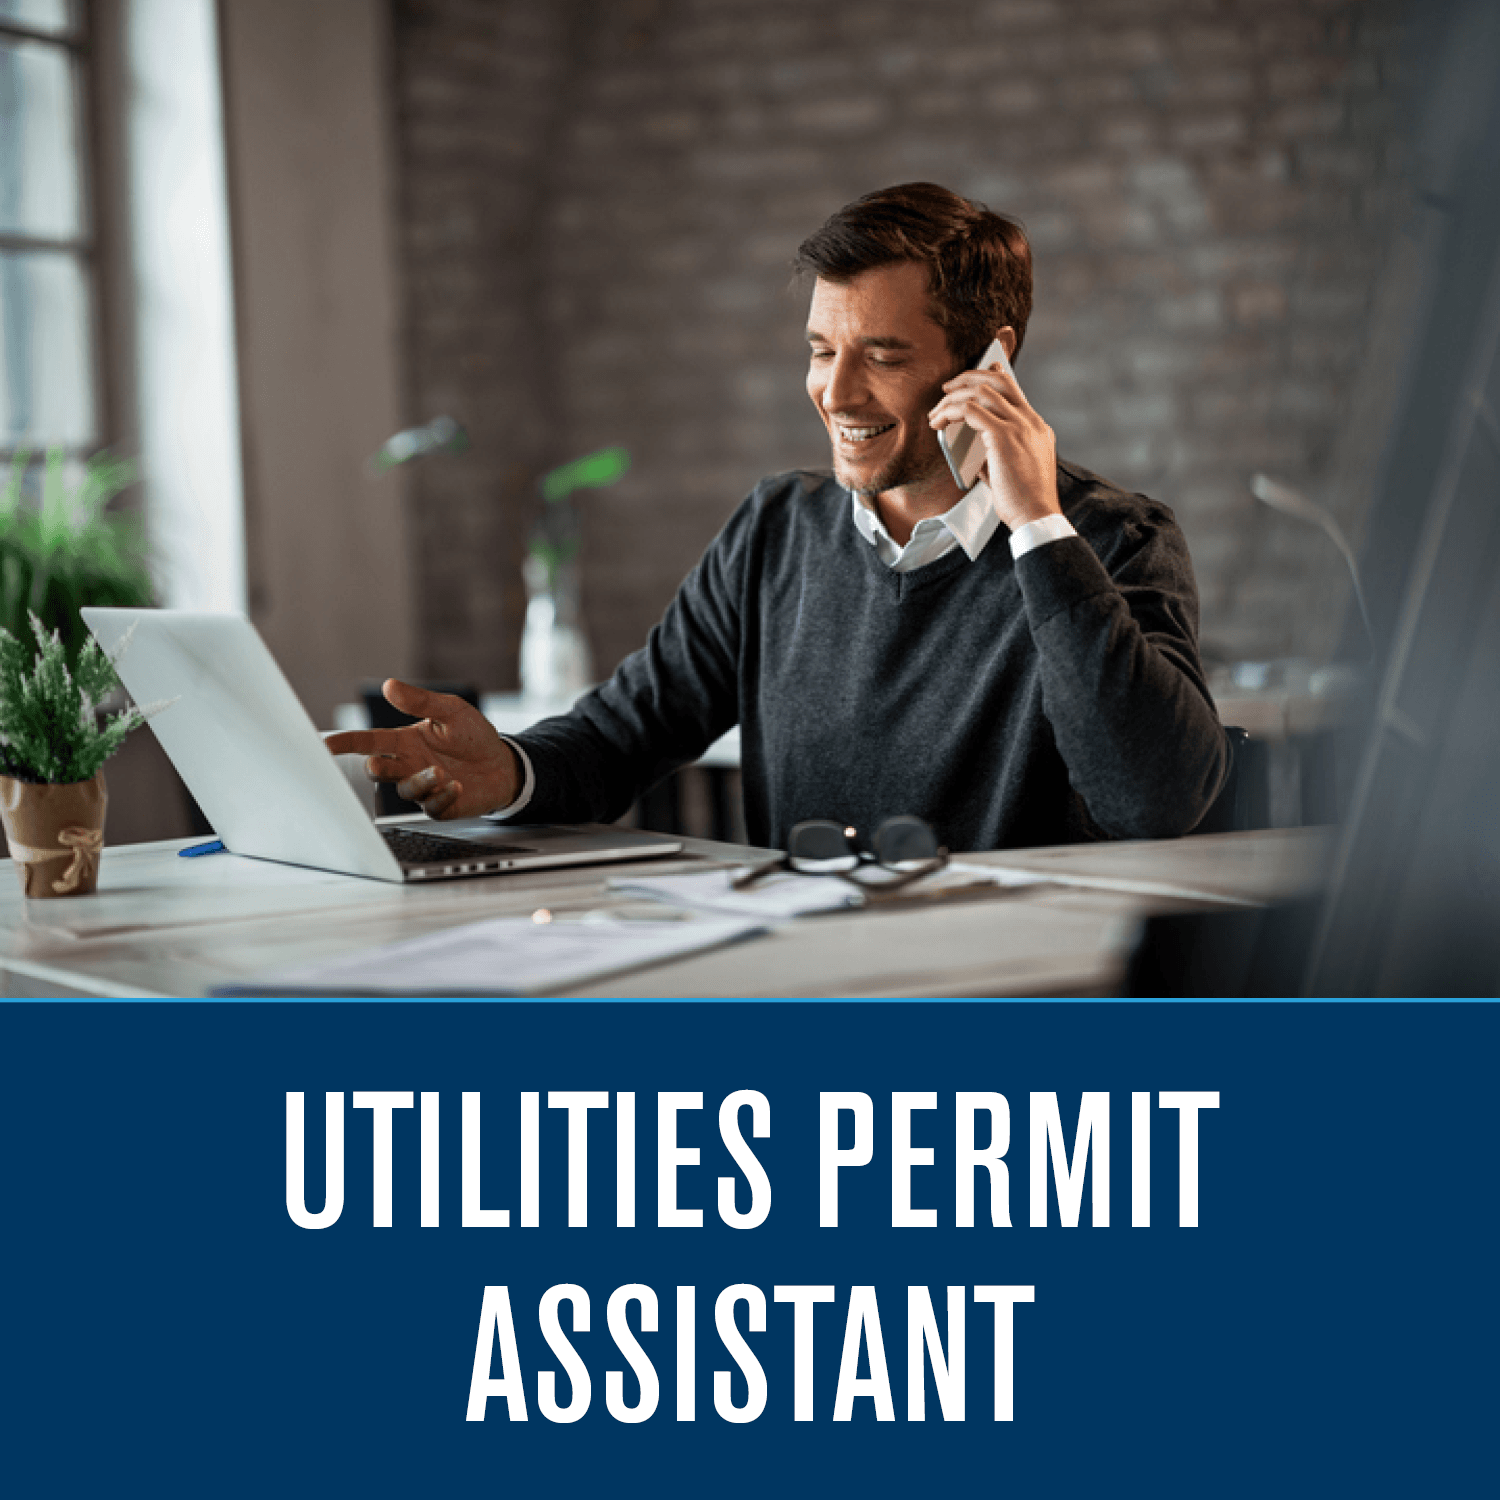 Utilities Permit Assistant